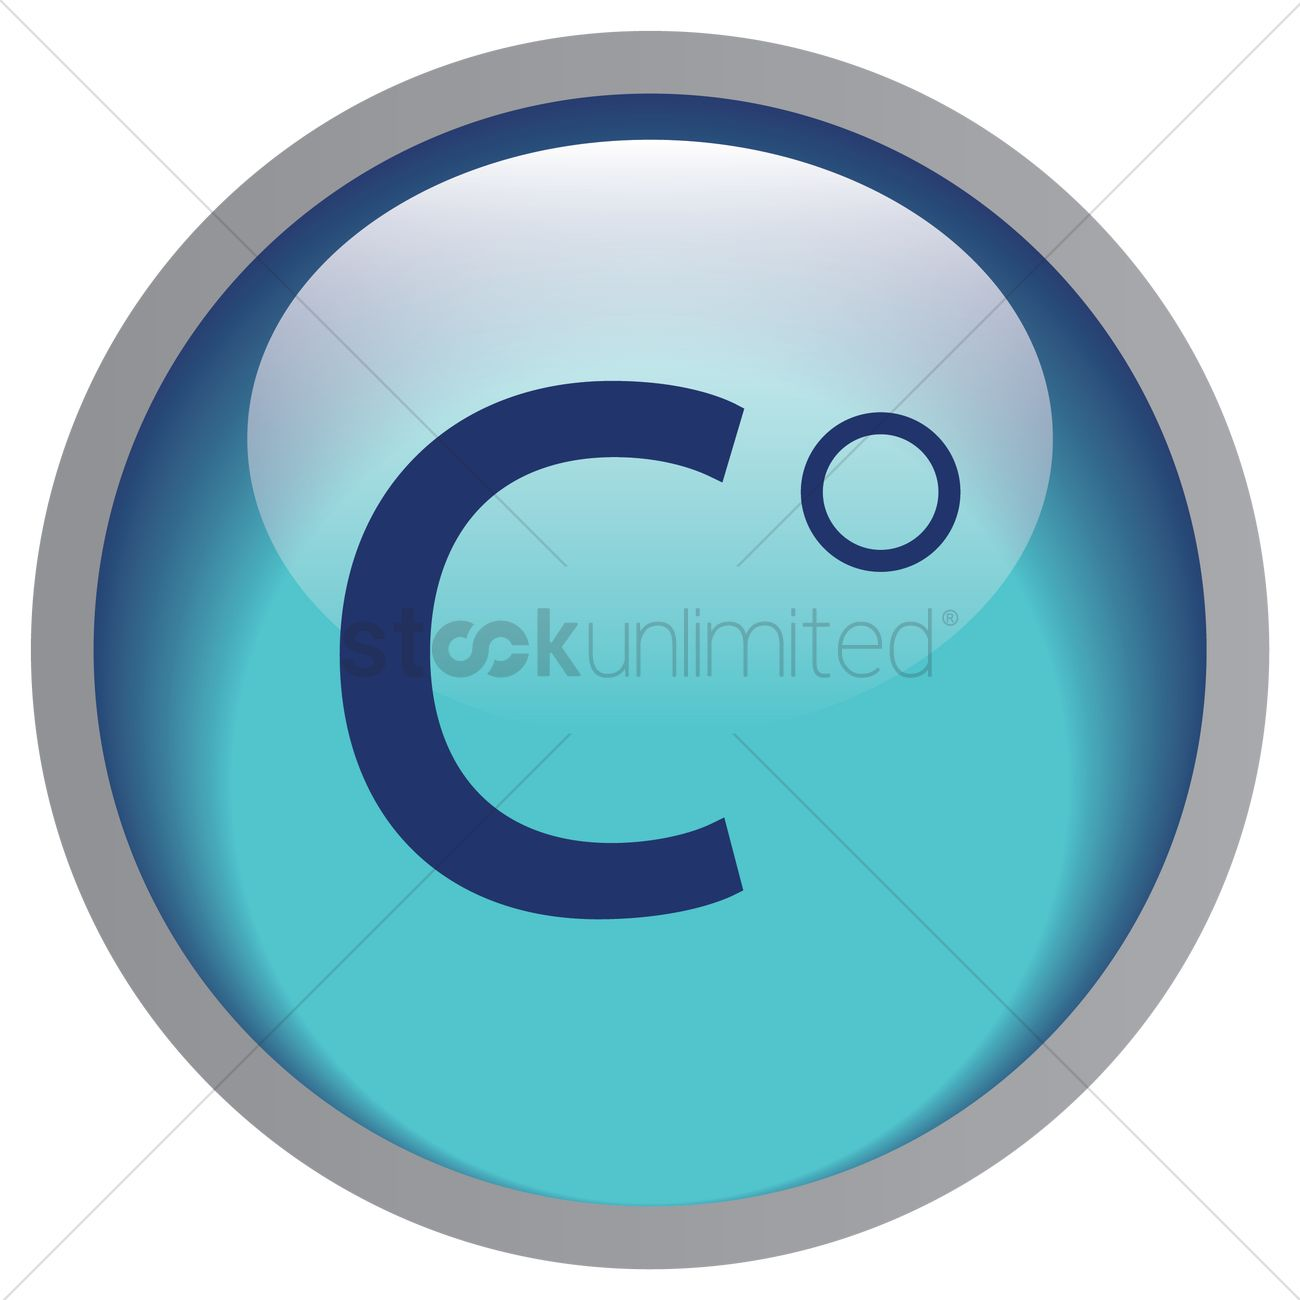 Celsius Symbol Vector Image 1325811 Stockunlimited